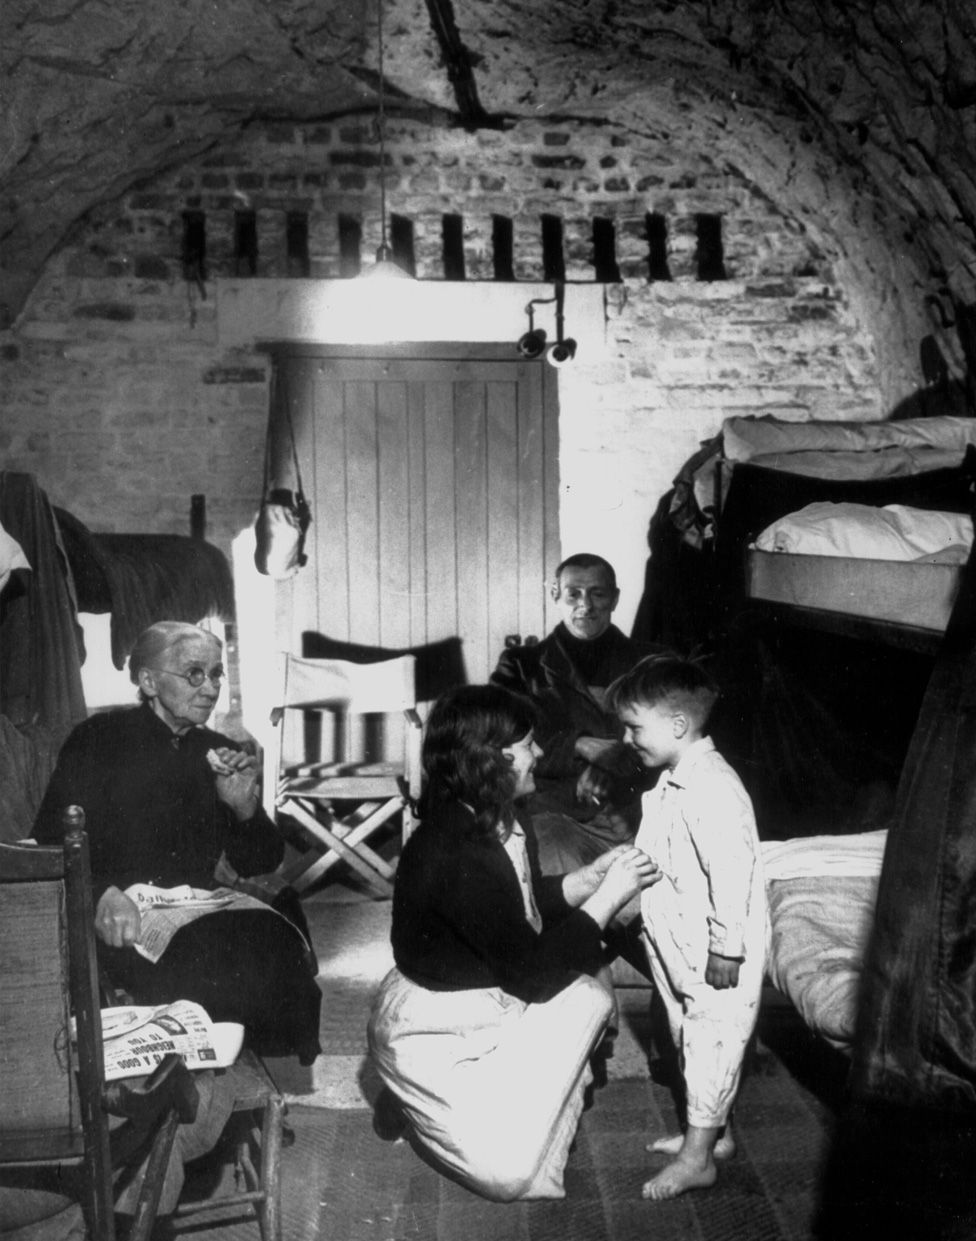 Residents finally got much needed rest, such as at Dover, because they couldn't hear the noise of the raids